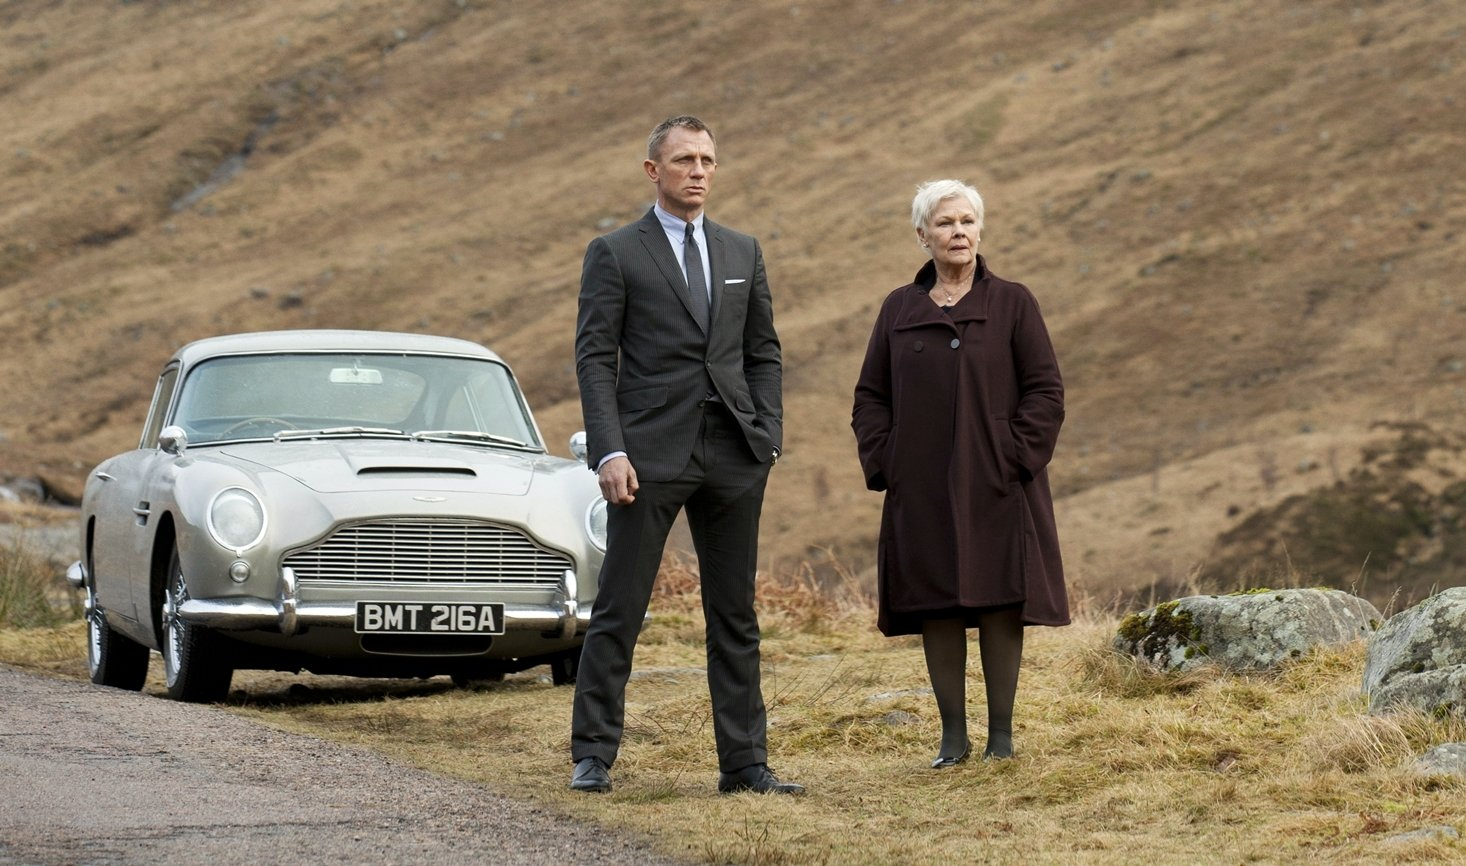 skyfall wallpaper and background image | 1466x866 | id:626321